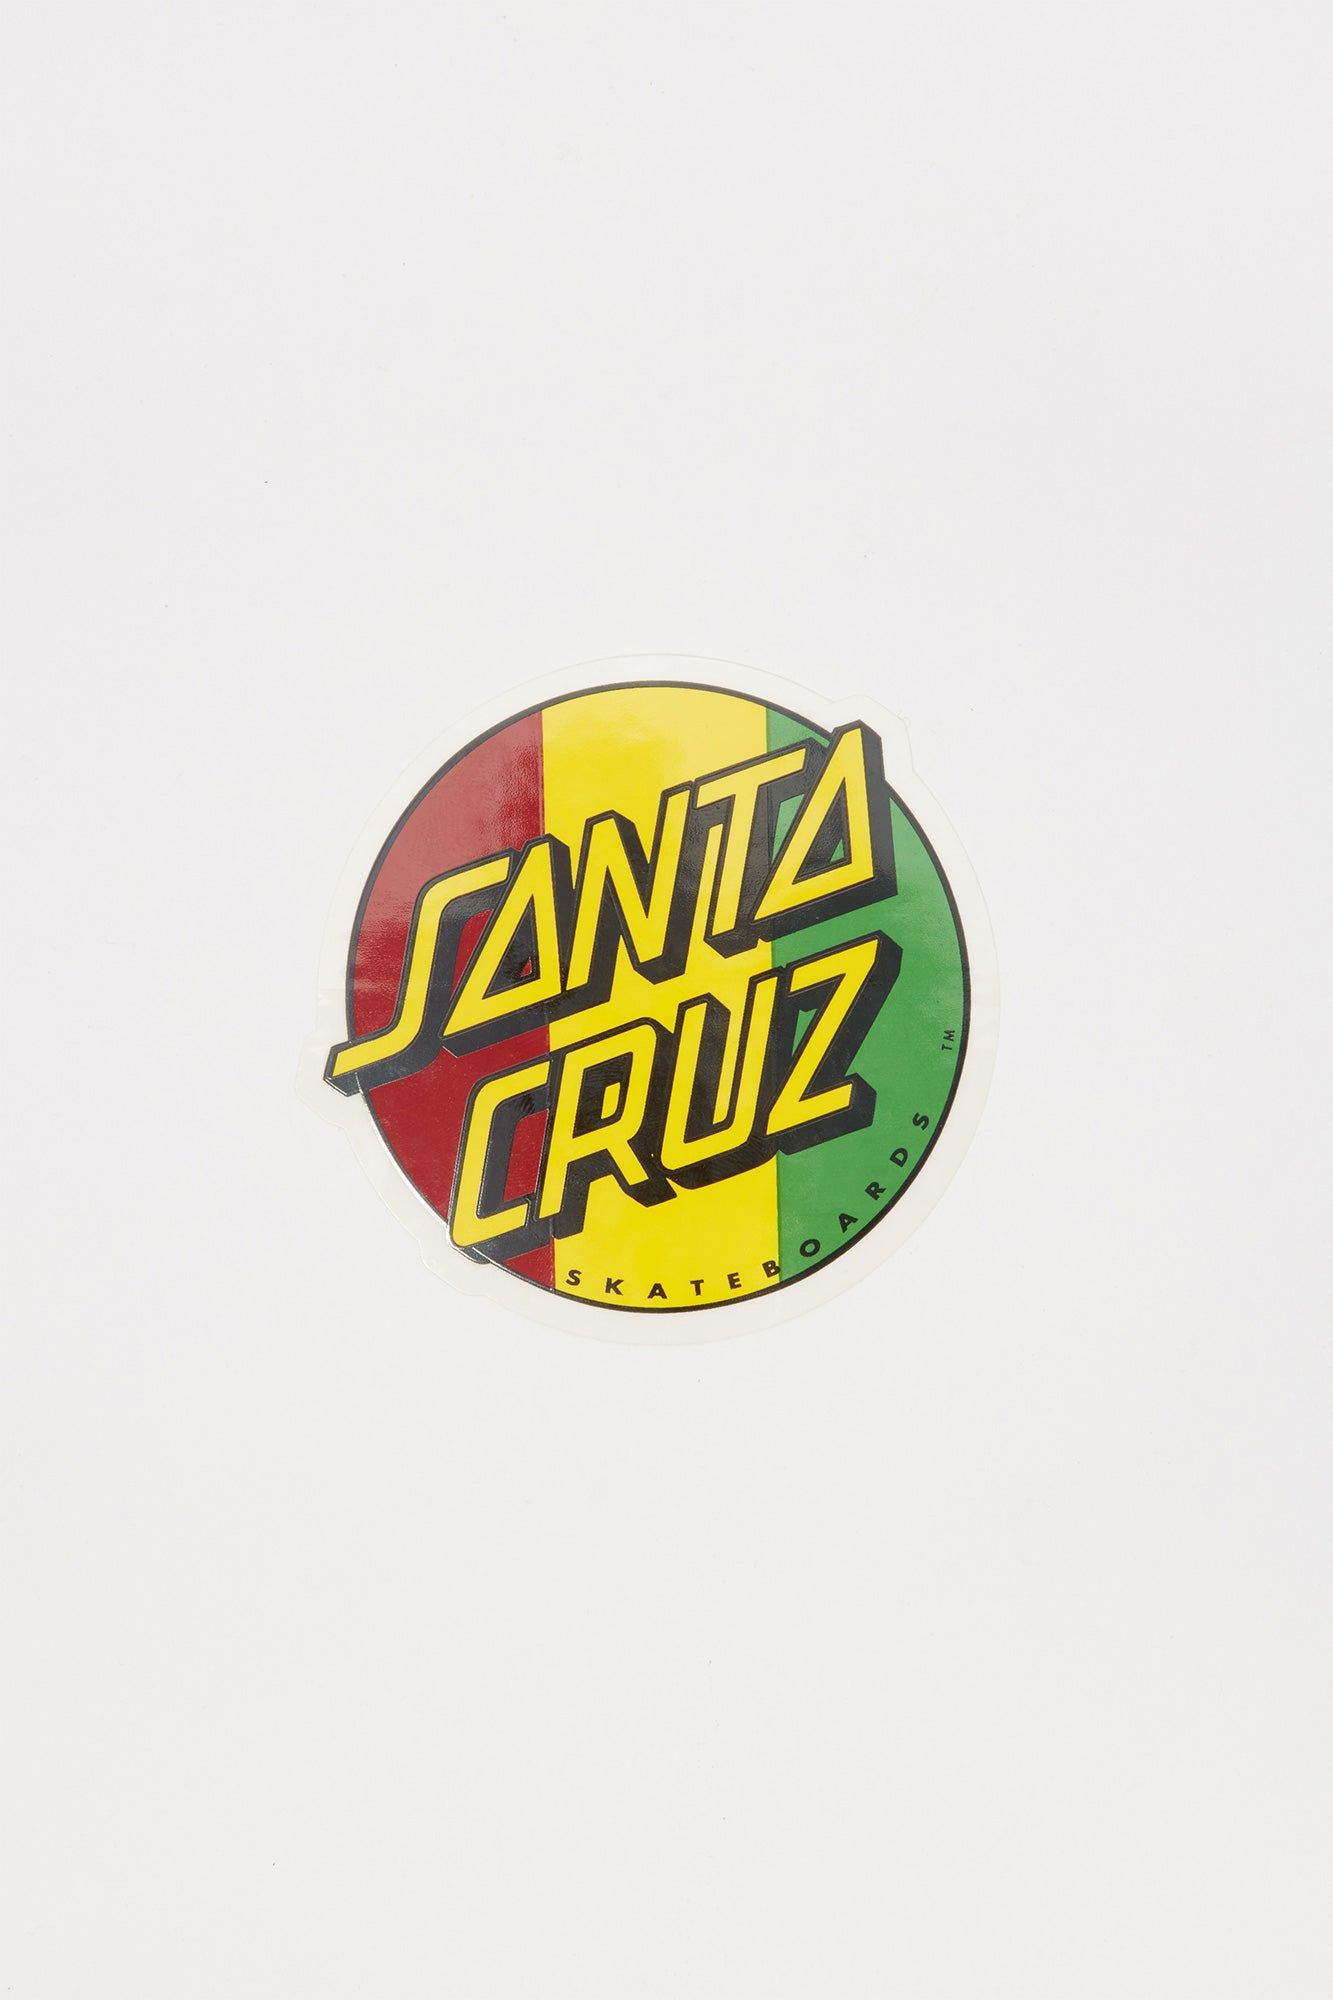 Santa cruz rasta 3 sticker